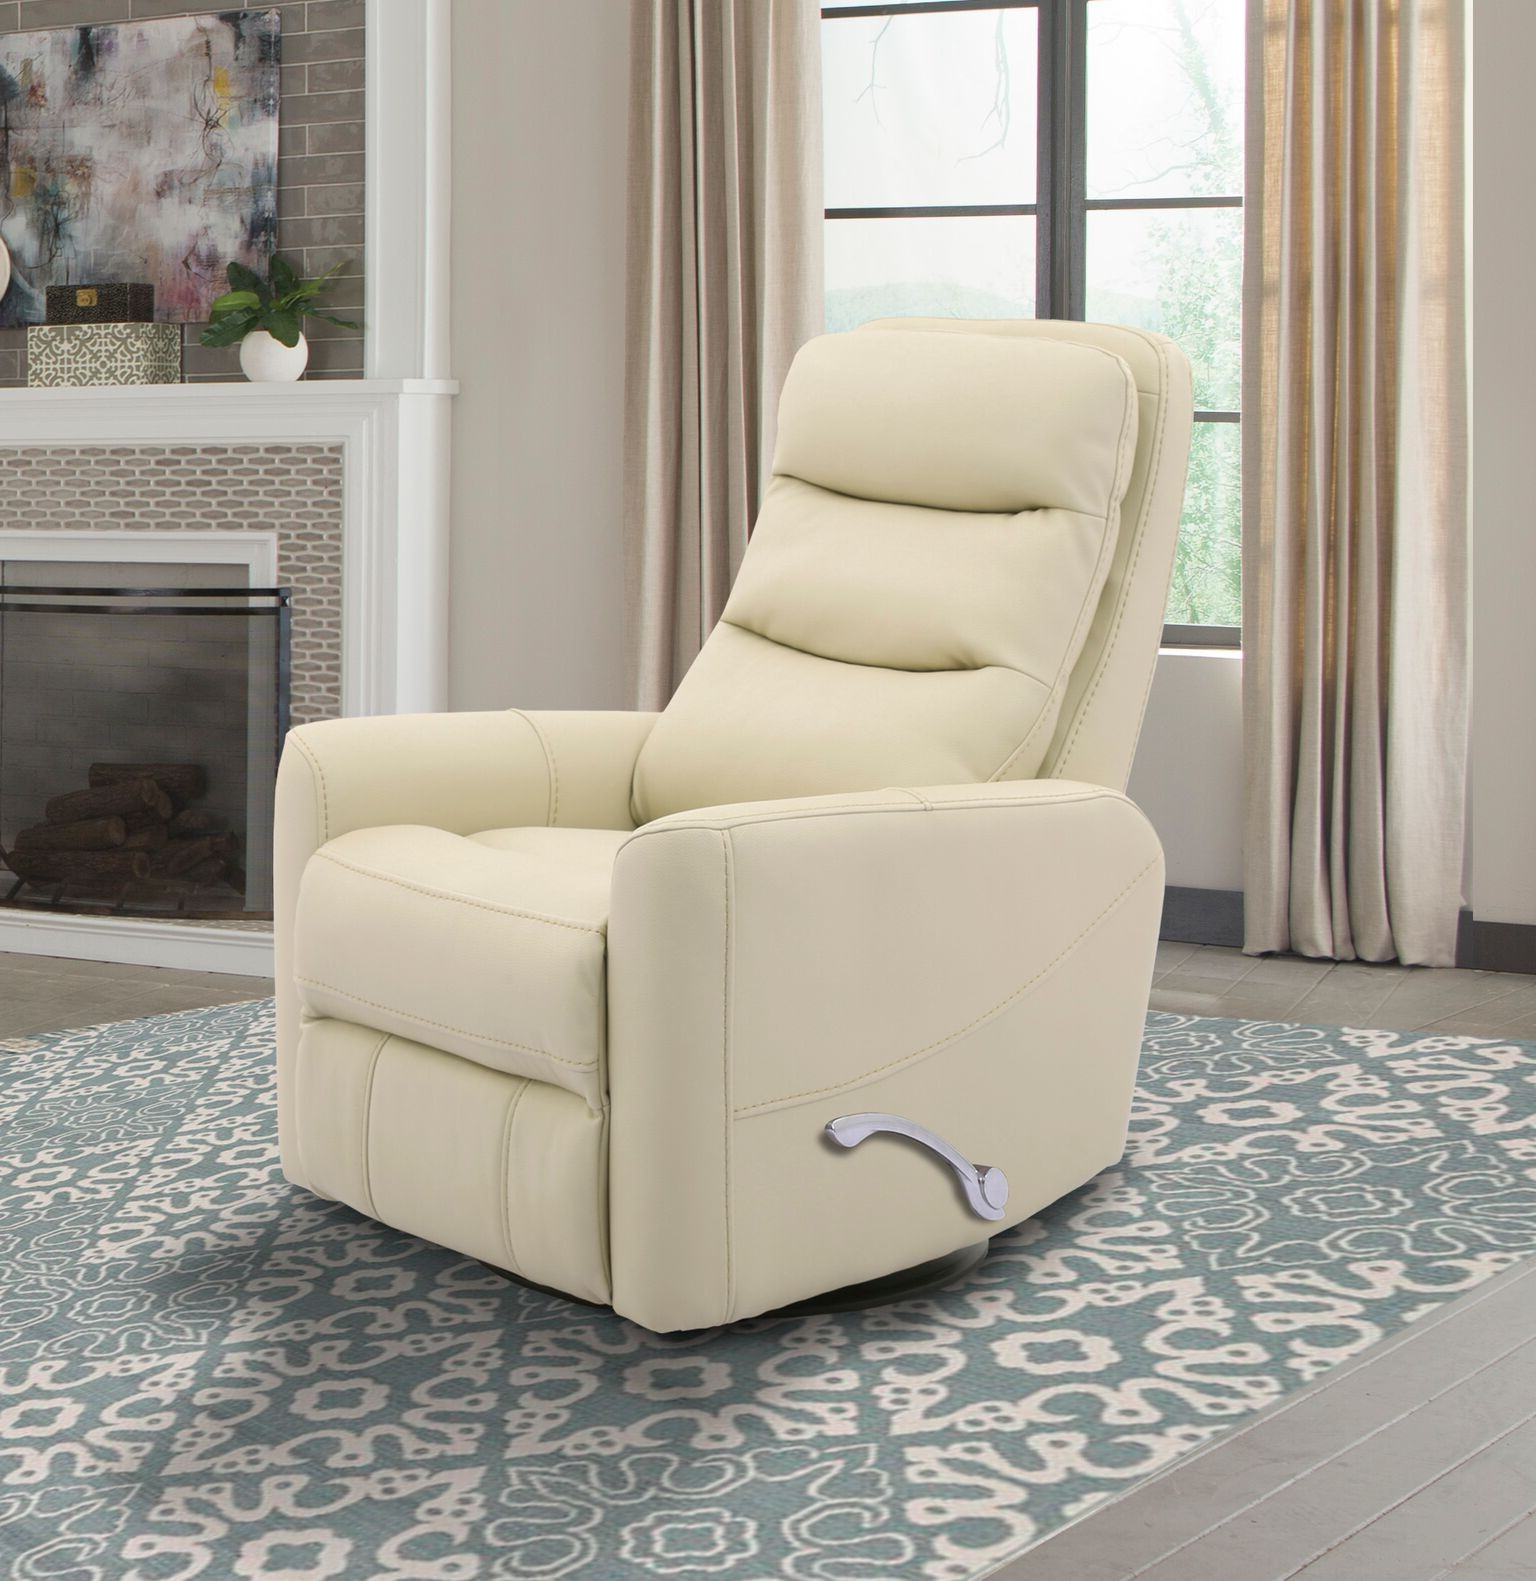 Hercules  Oyster  Swivel Glider Recliner With Articulating Headrest In Most Current Hercules Chocolate Swivel Glider Recliners (View 6 of 20)